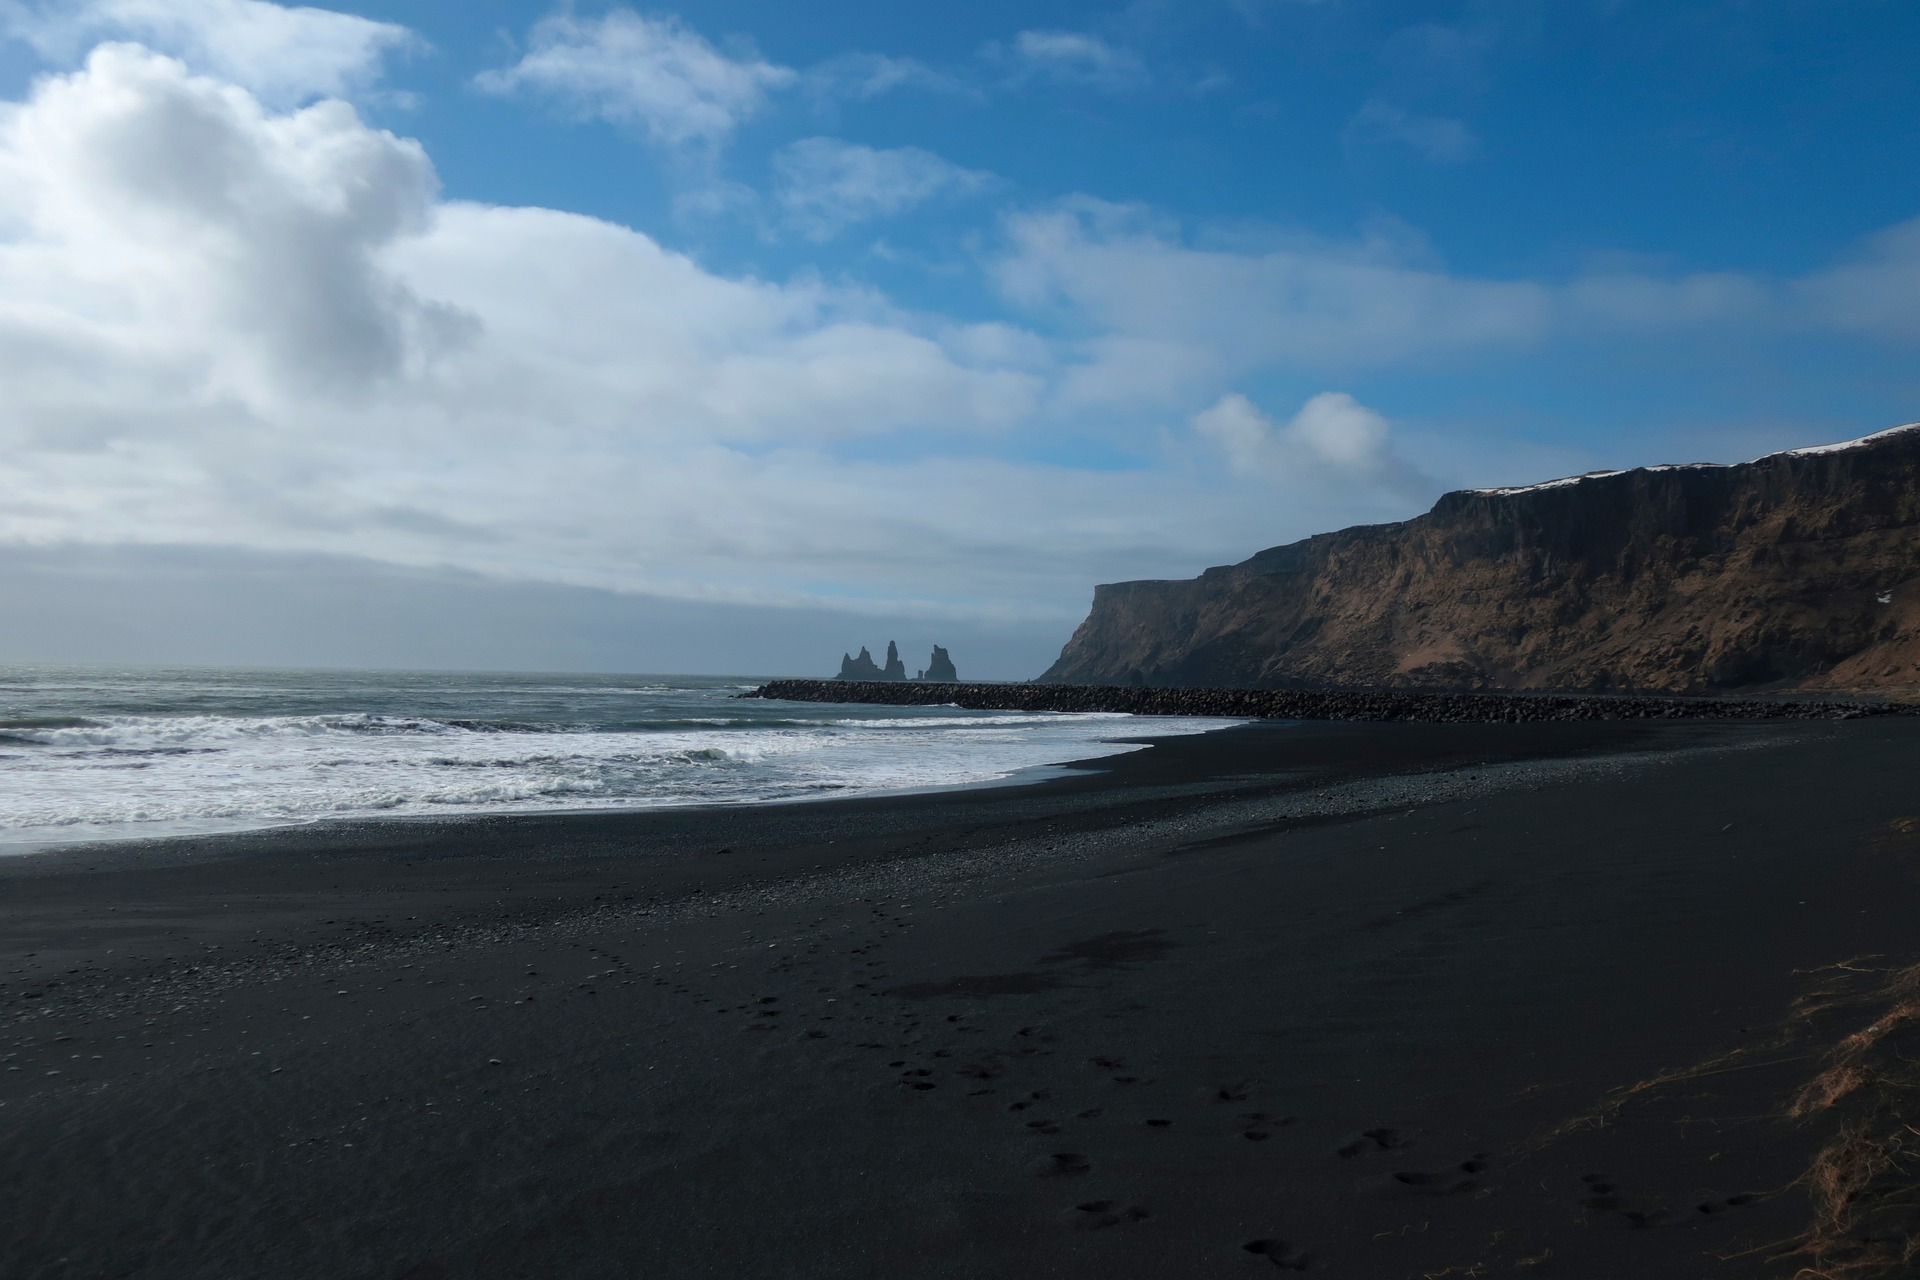 black sand beach in vik in iceland, cliffs, sea, waves, blue sky